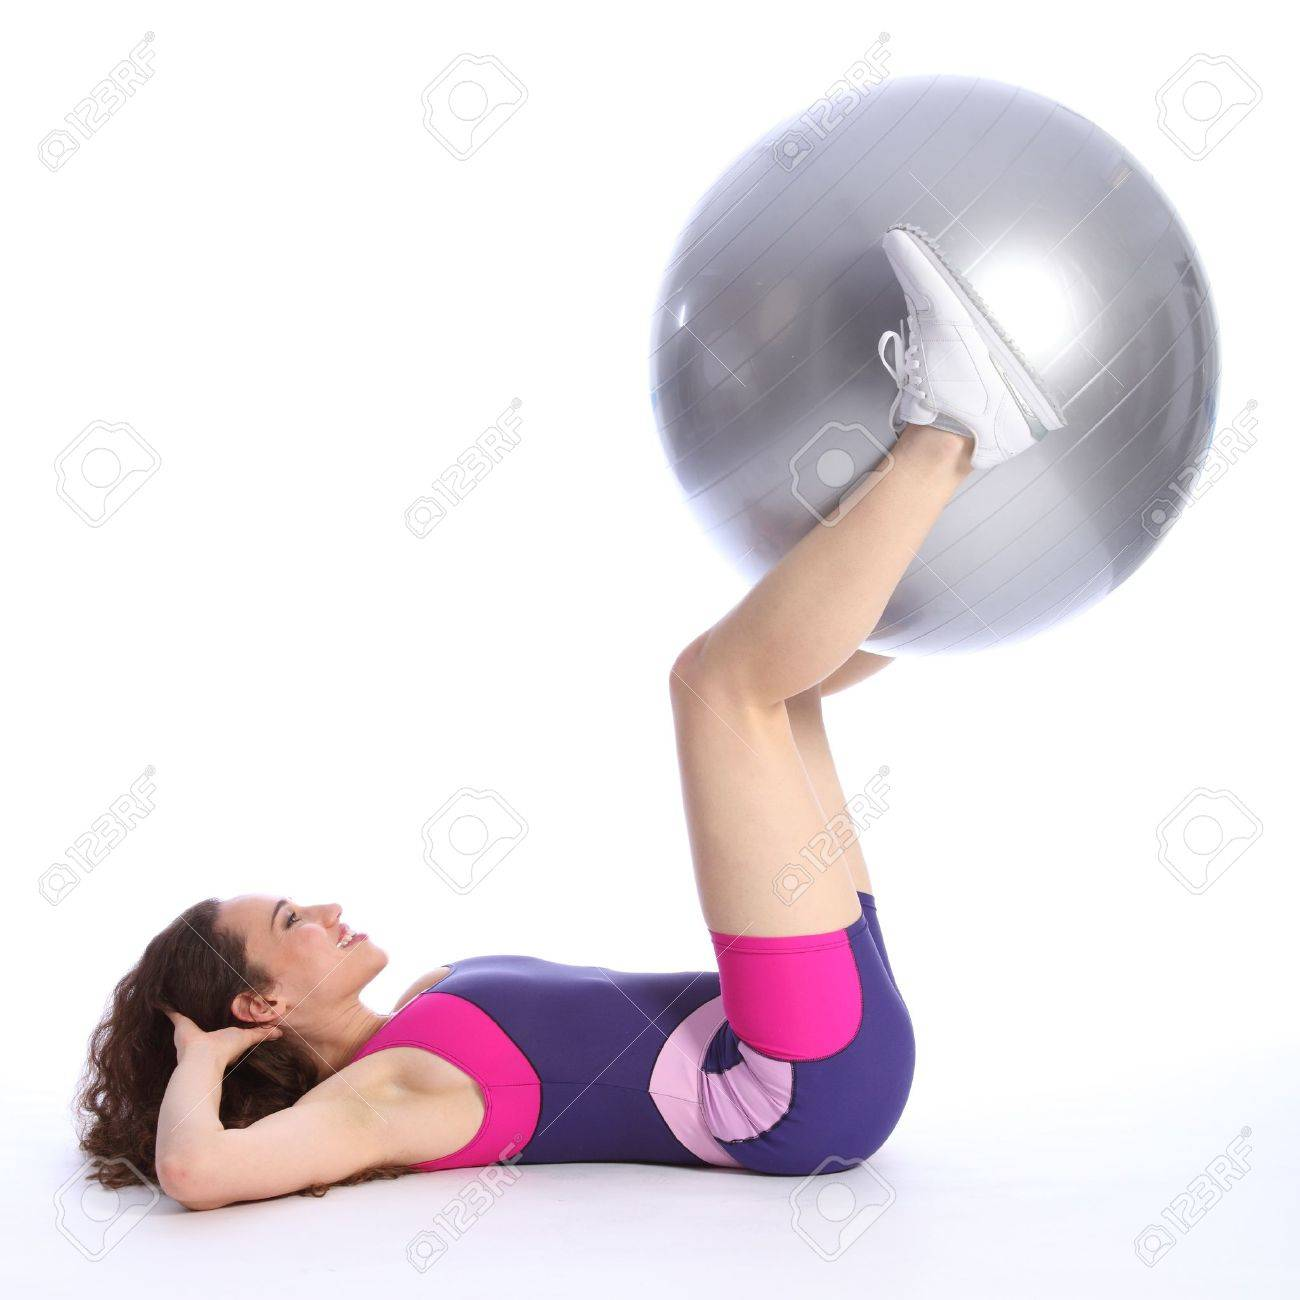 Fit beautiful brunette woman with big smile lying on the floor lifting exercise ball using her legs as part of workout routine. She is wearing bright blue and pink sports clothes and white trainers. Stock Photo - 9926572